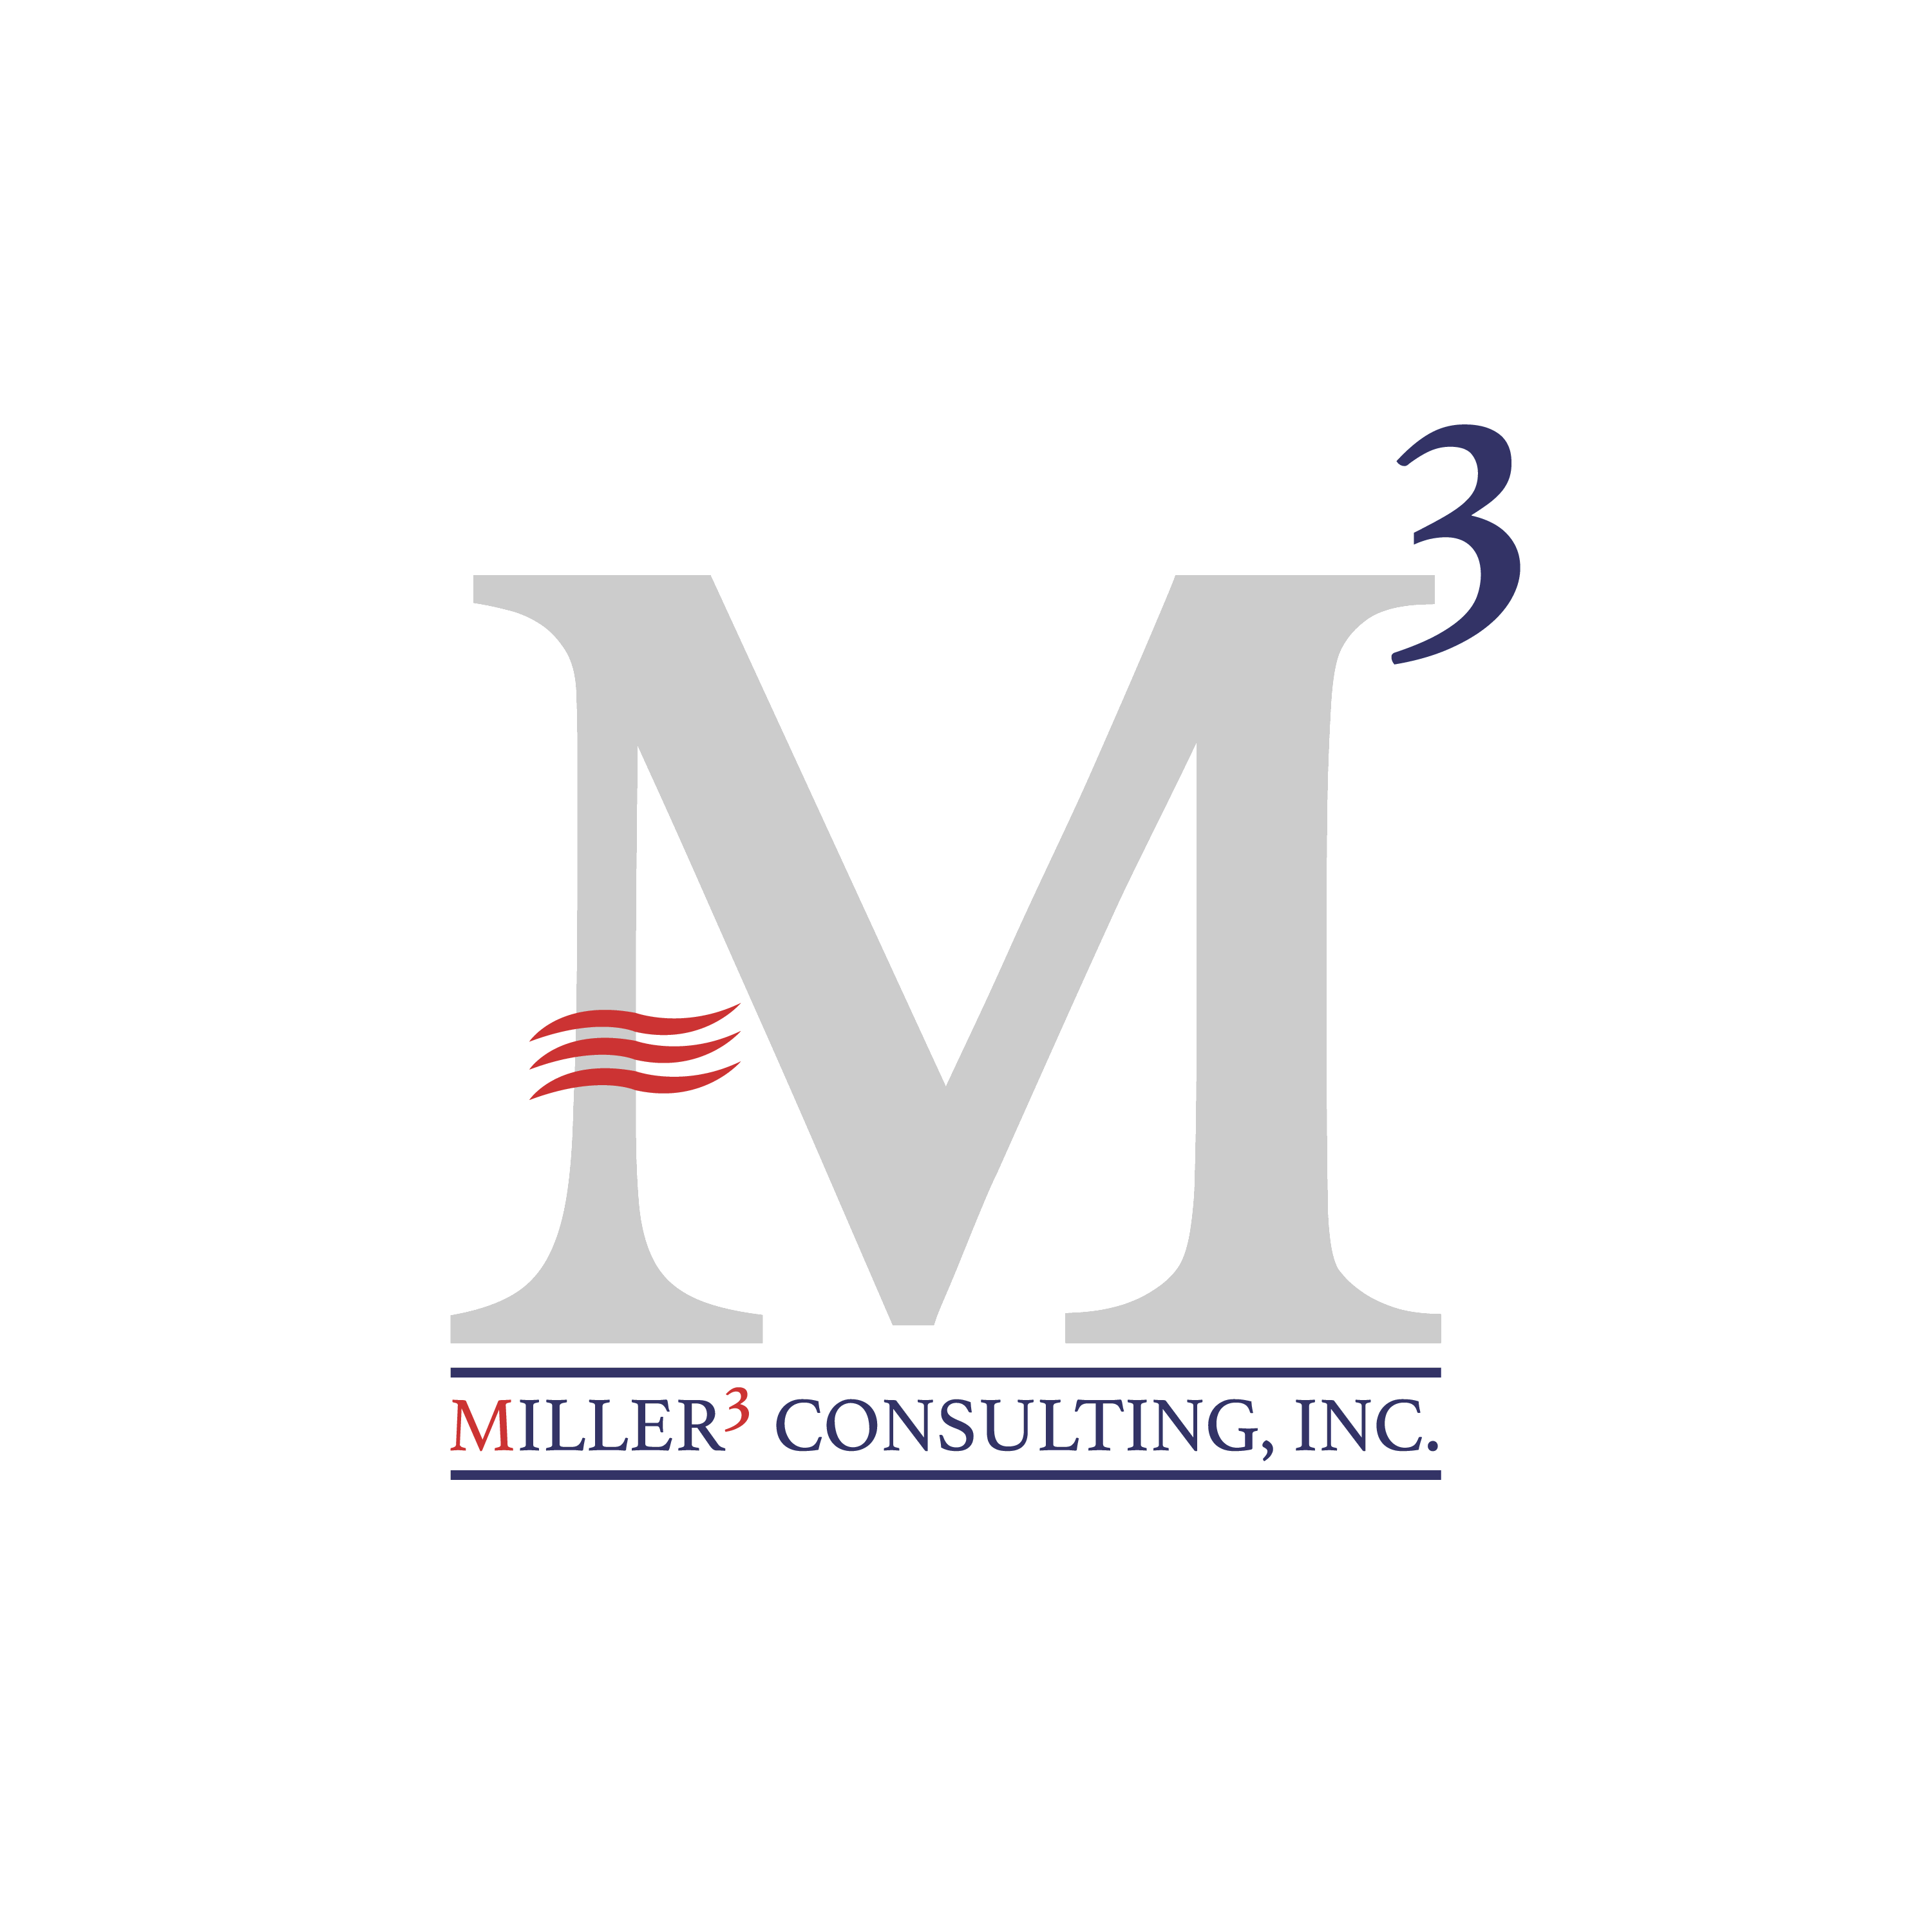 Miller3 Consulting